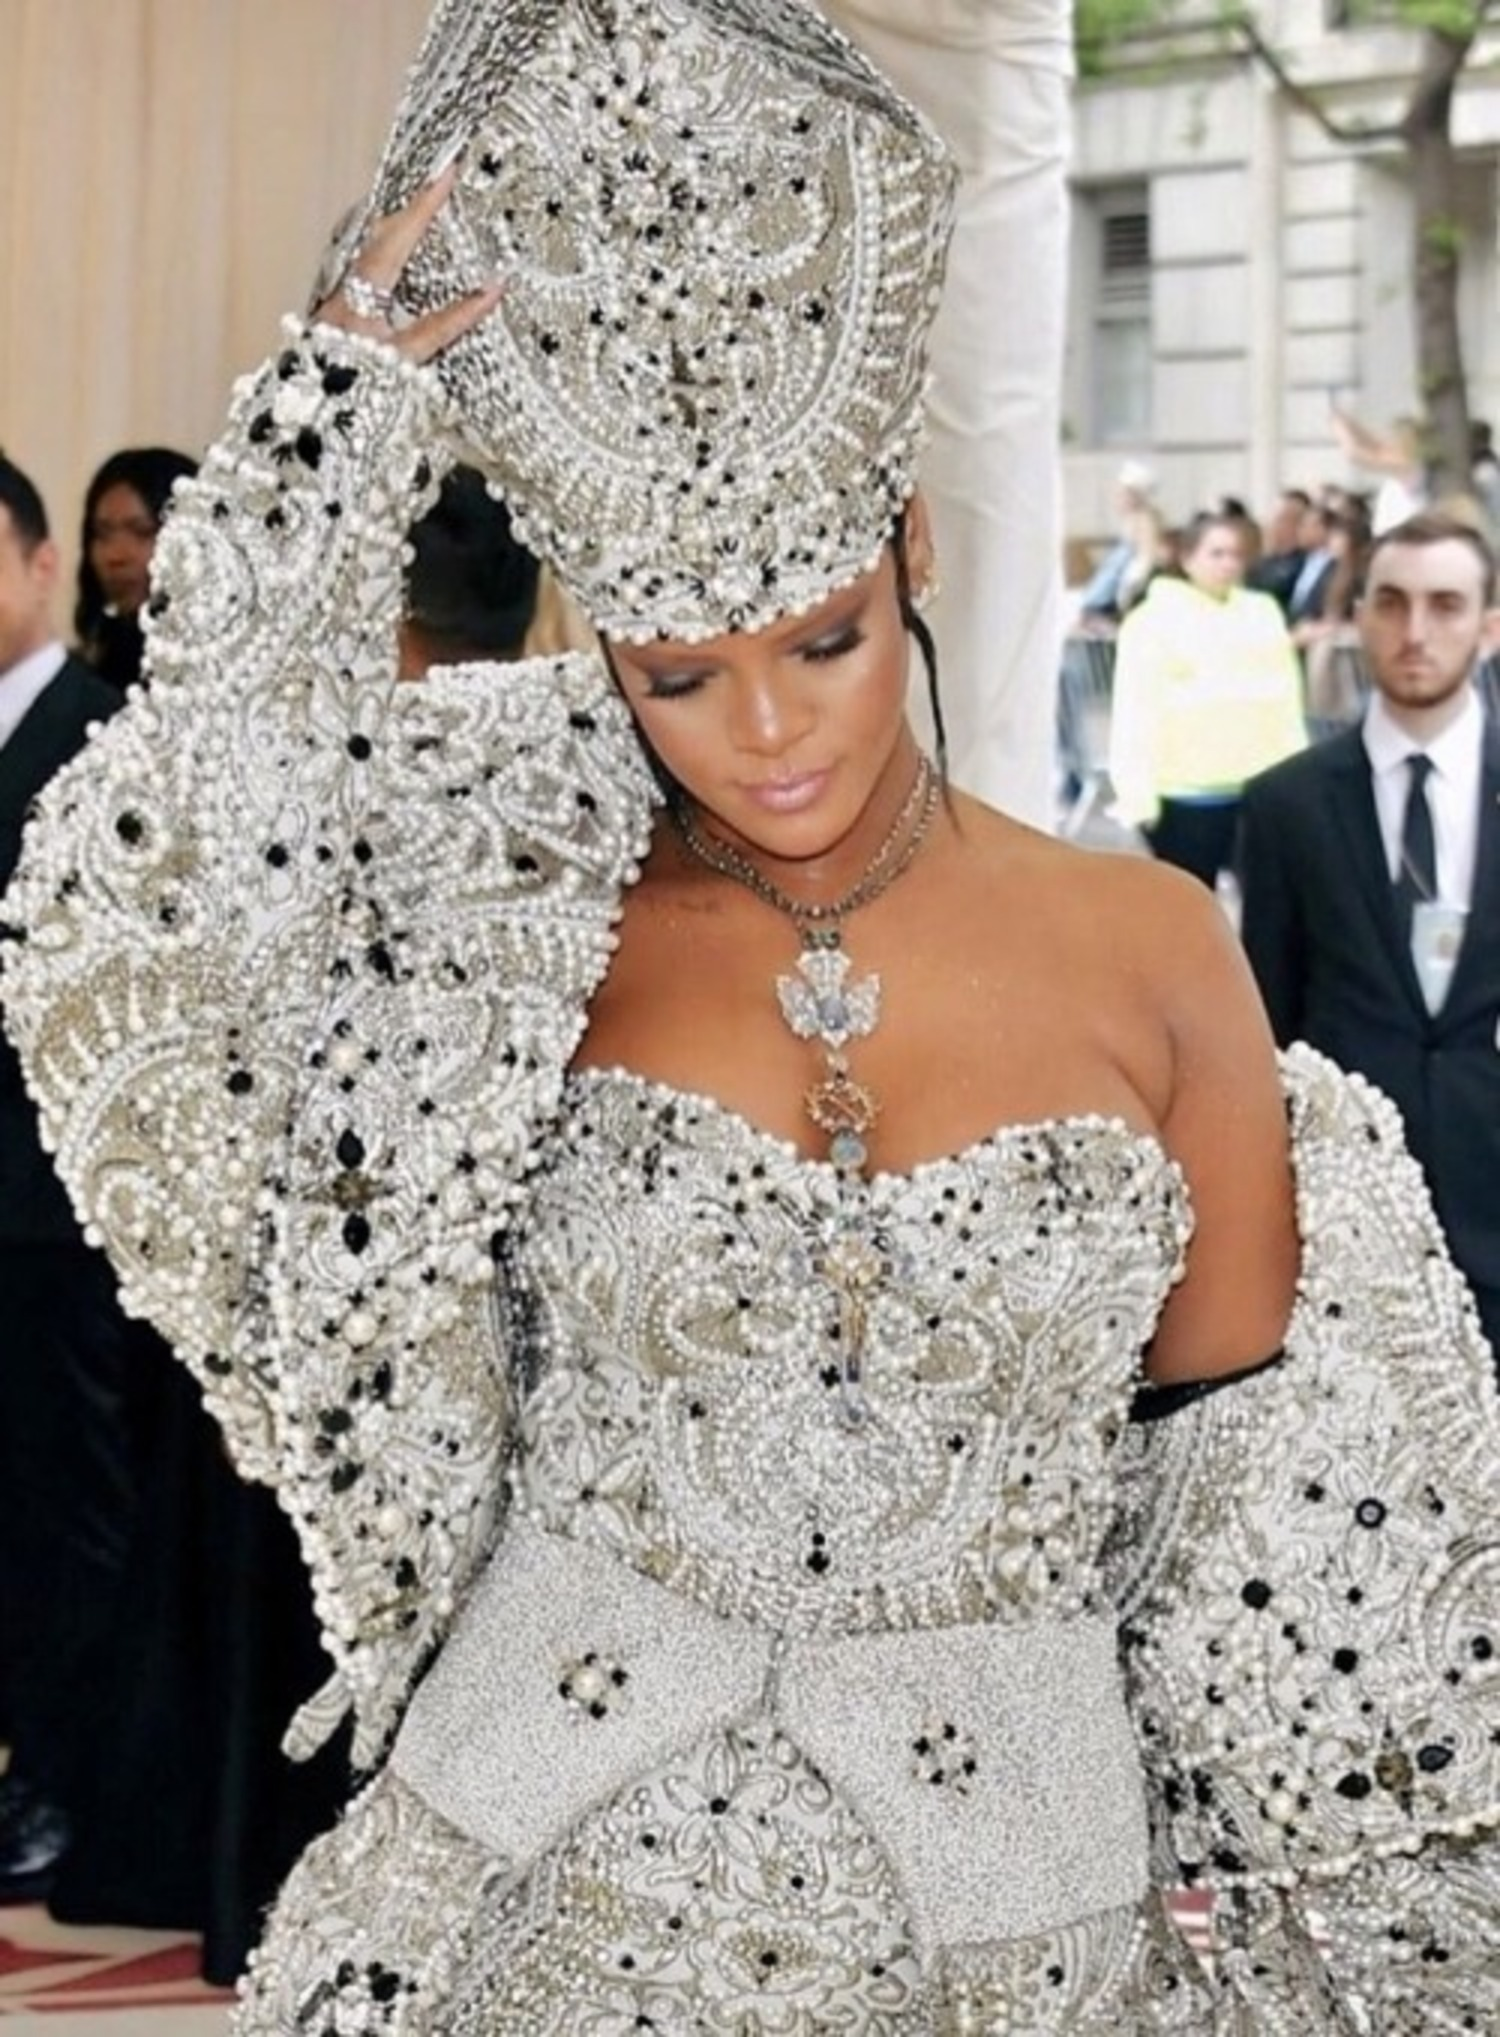 Rihanna at the 2018 Met Gala in New York City